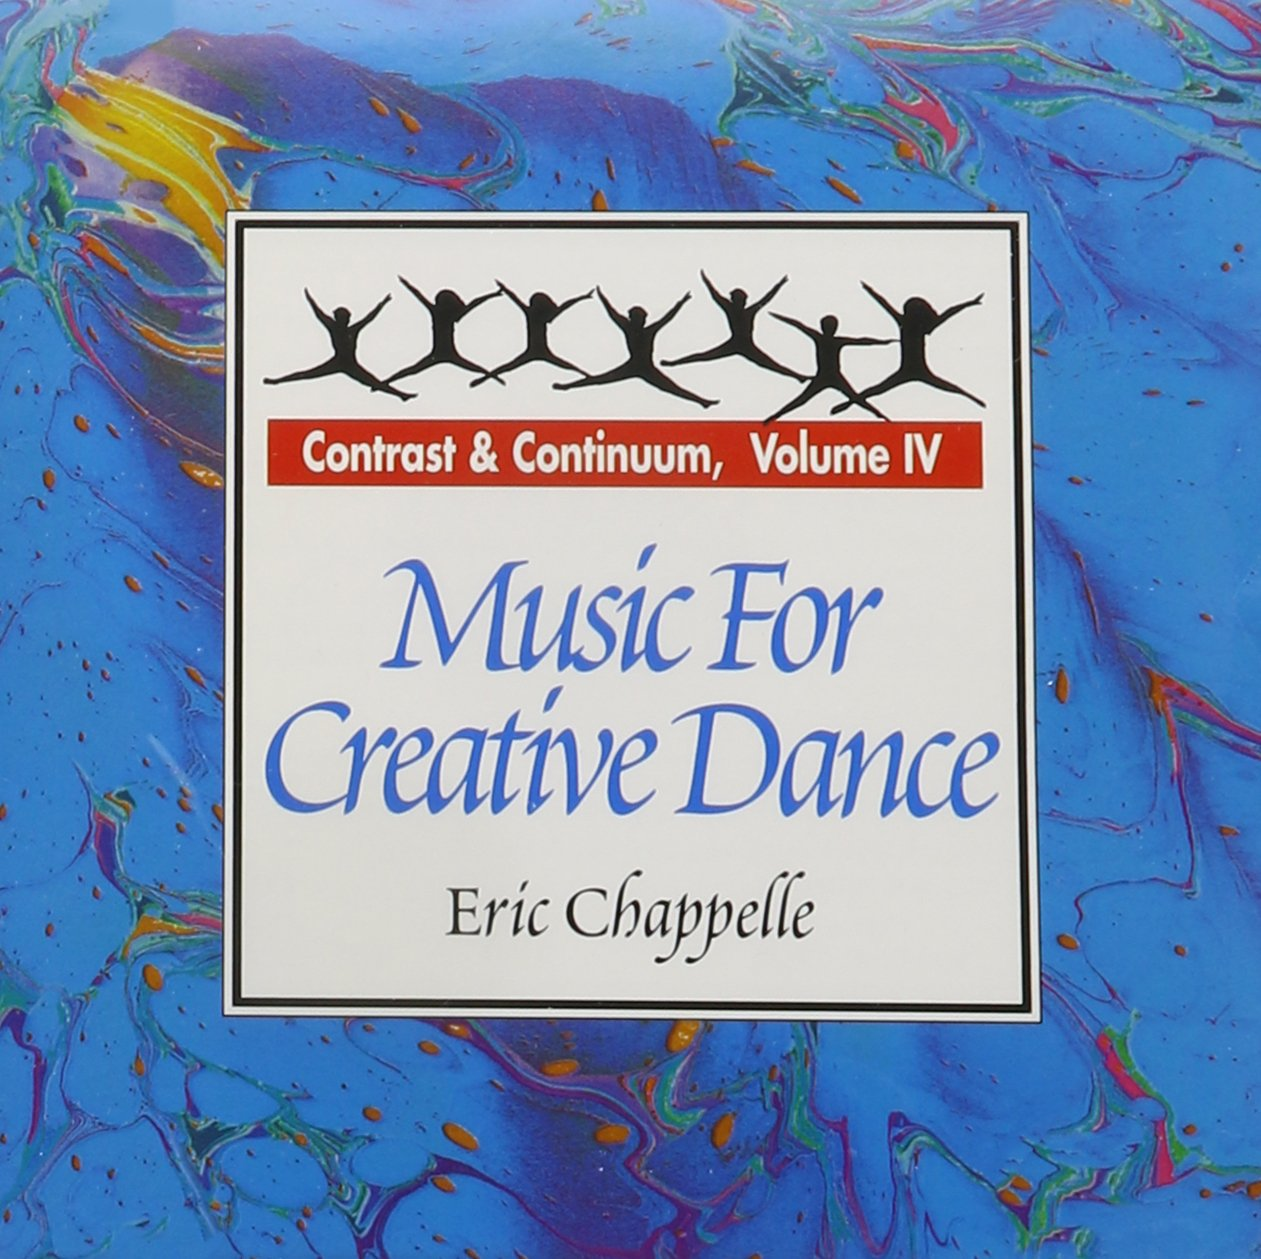 Music for Creative Dance: Contrast & Continuum 4